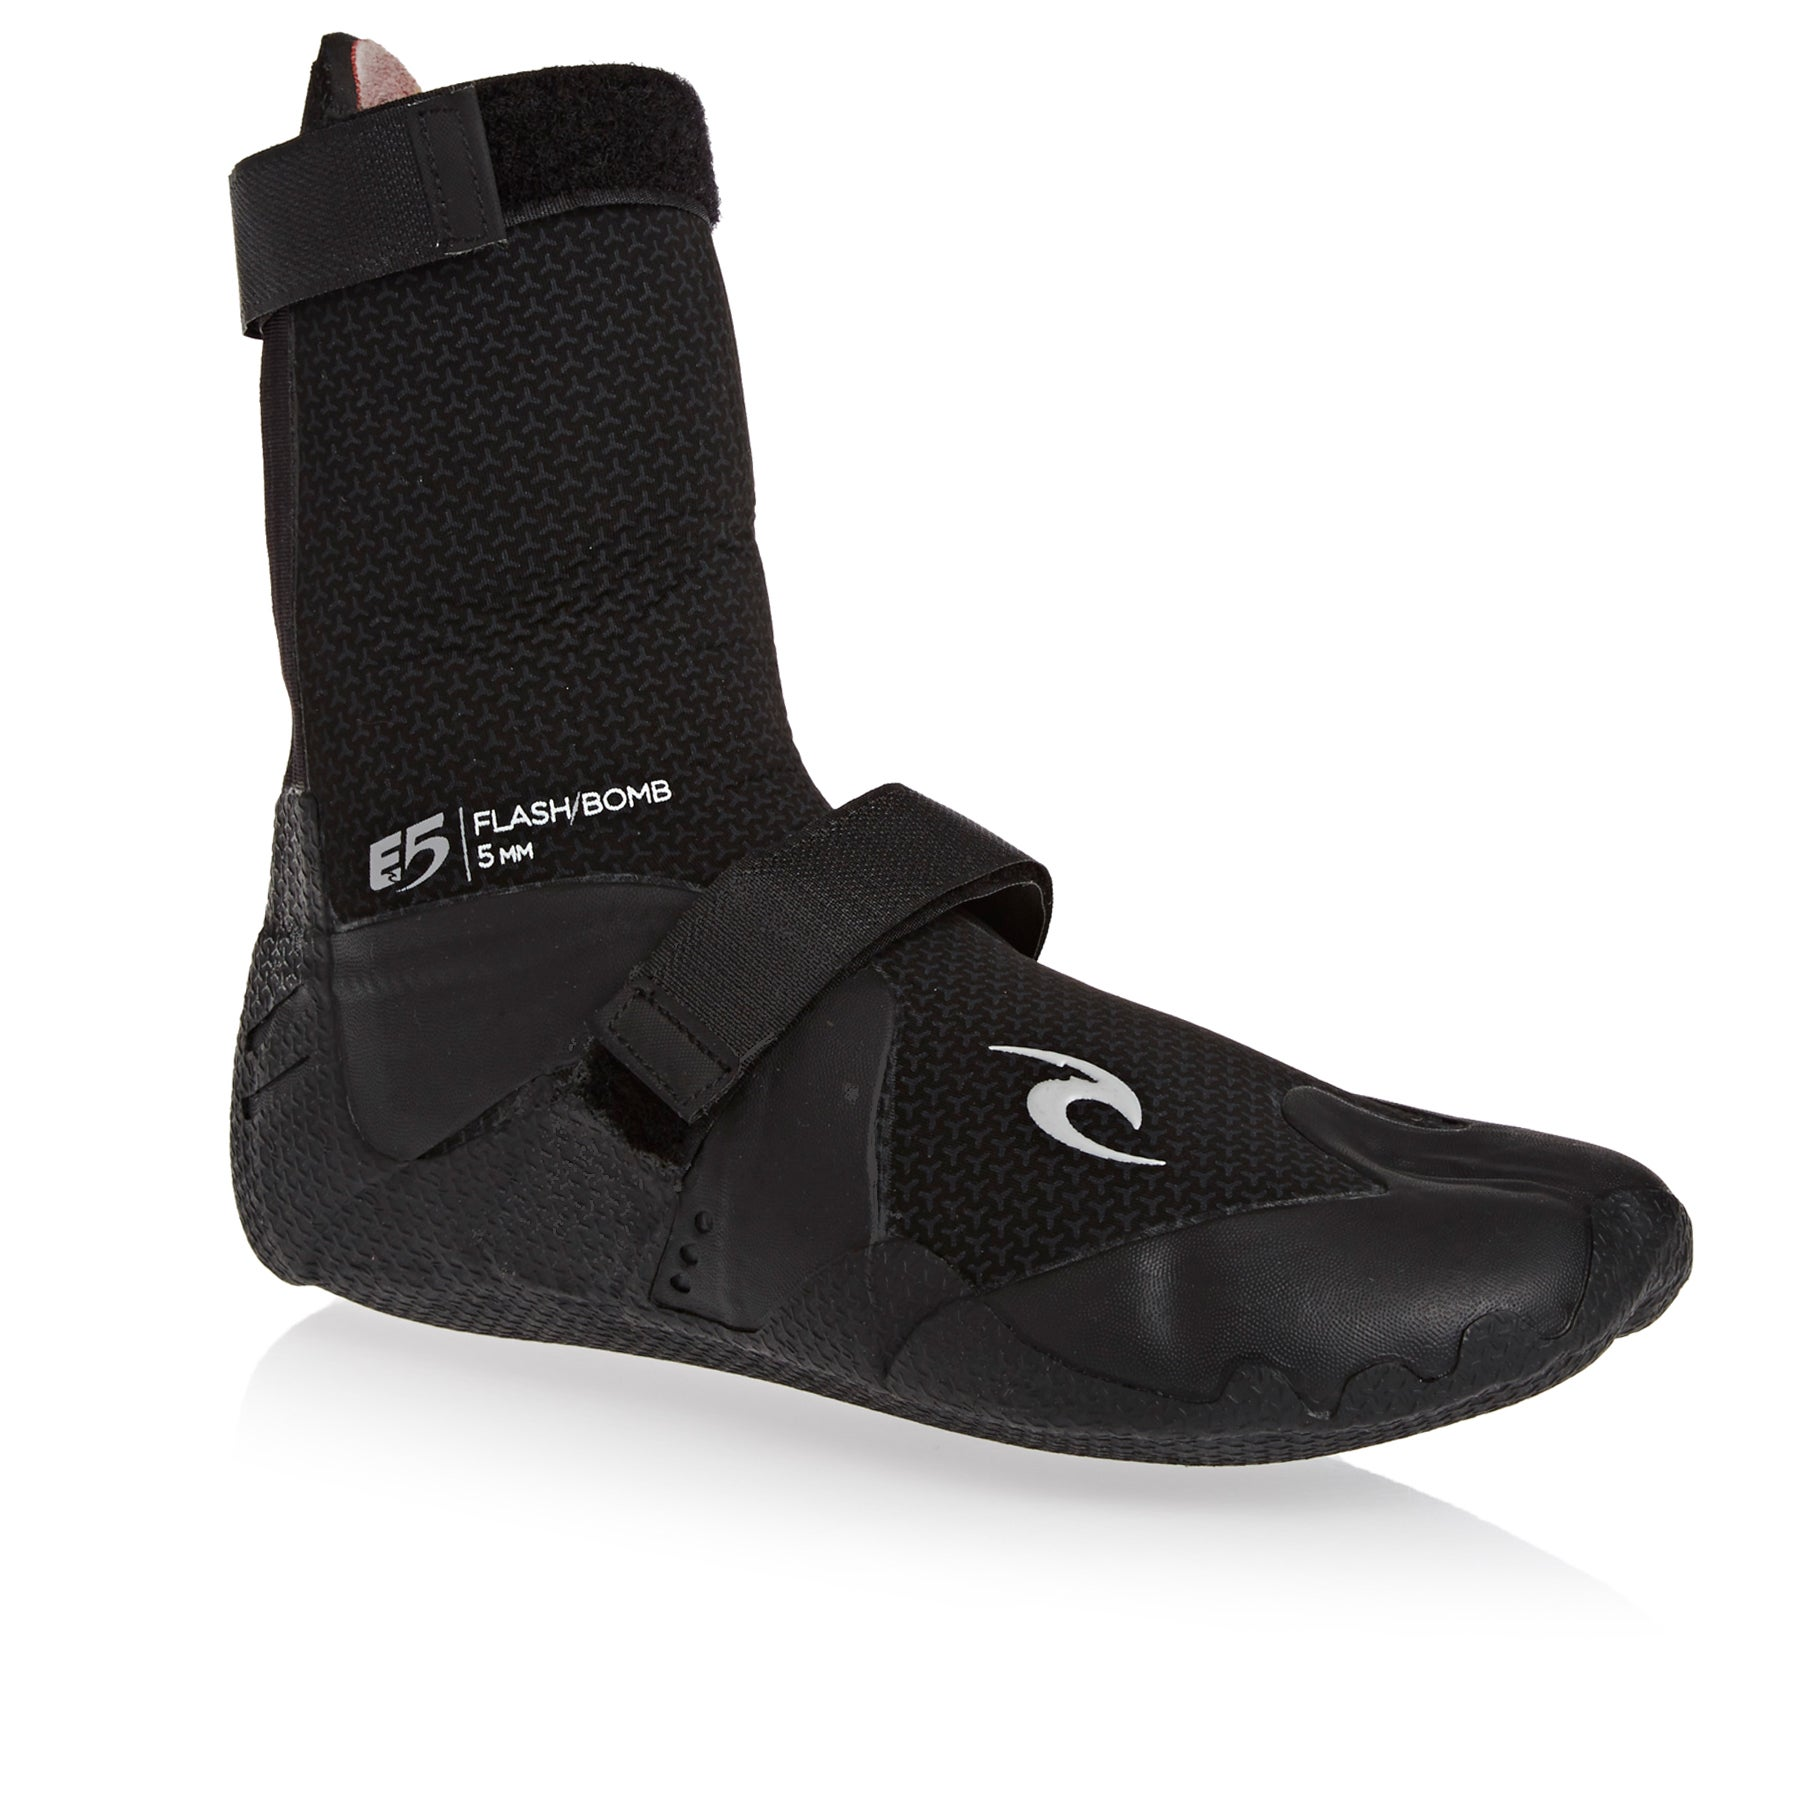 d75305780 Quiksilver Mens 5Mm Syncro Surfing Booties Round Toe Surf Boots Surf Boots  Black 13